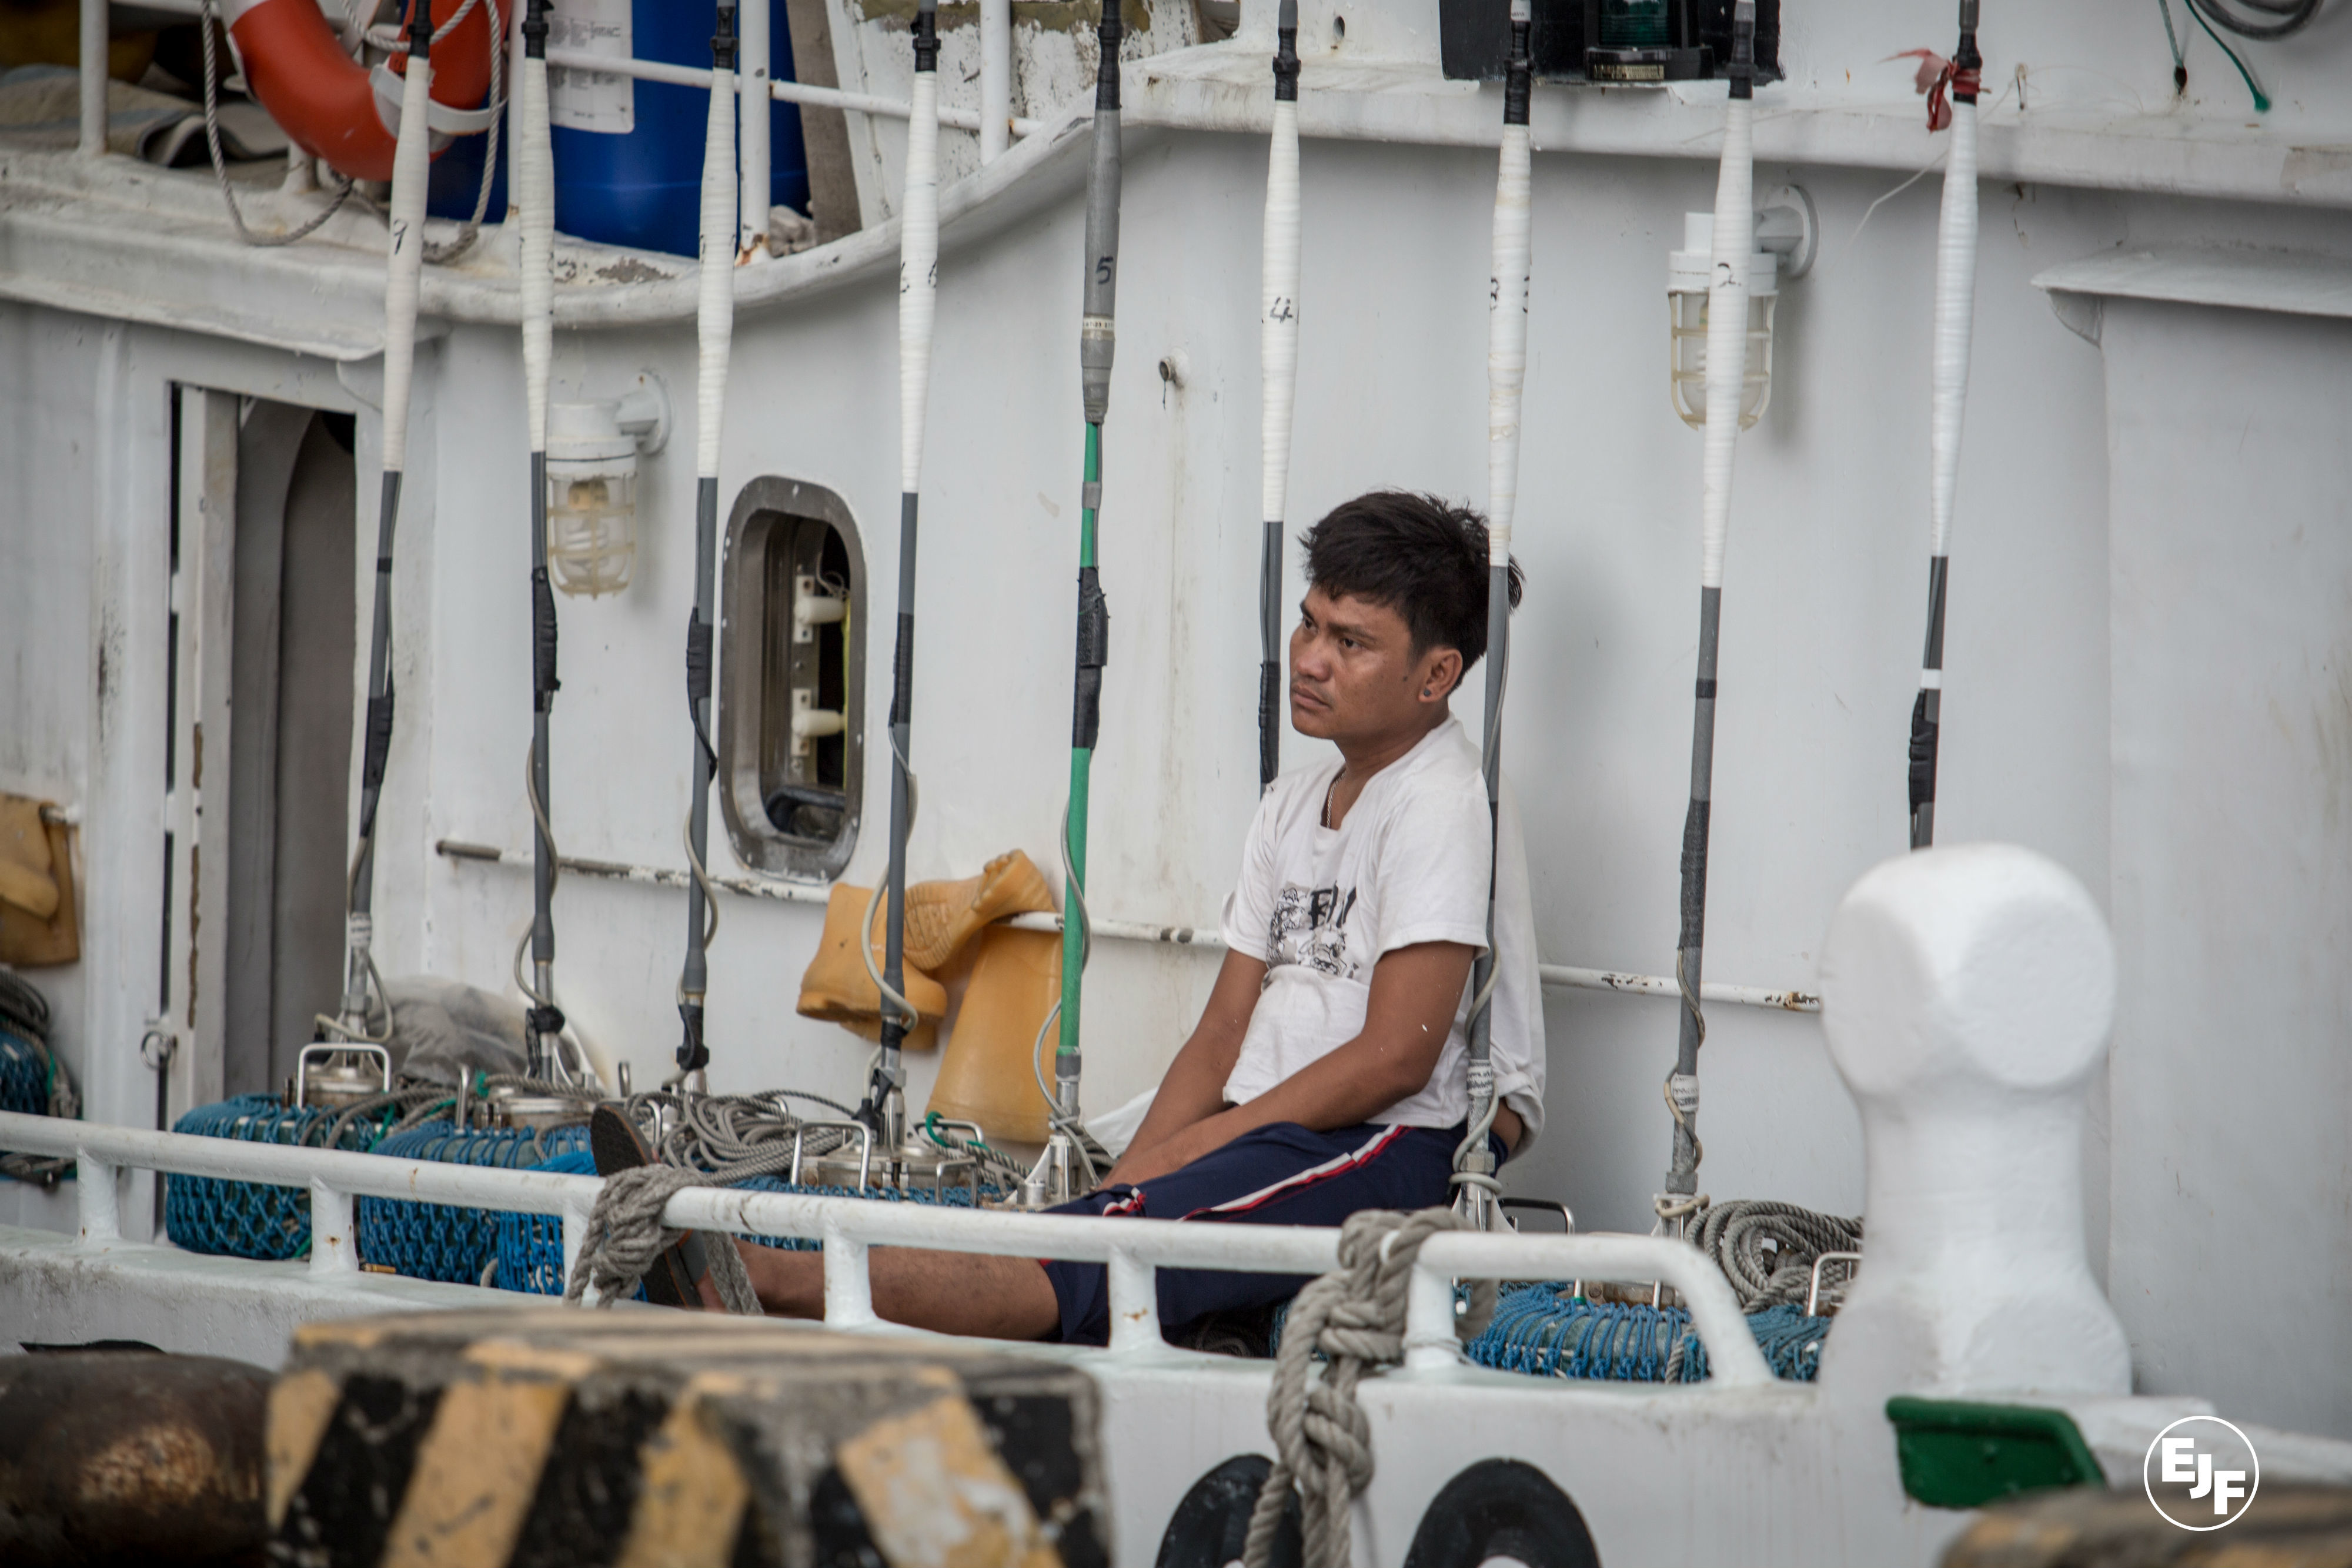 Taiwan and Chinese fishing fleets added to US forced labour list